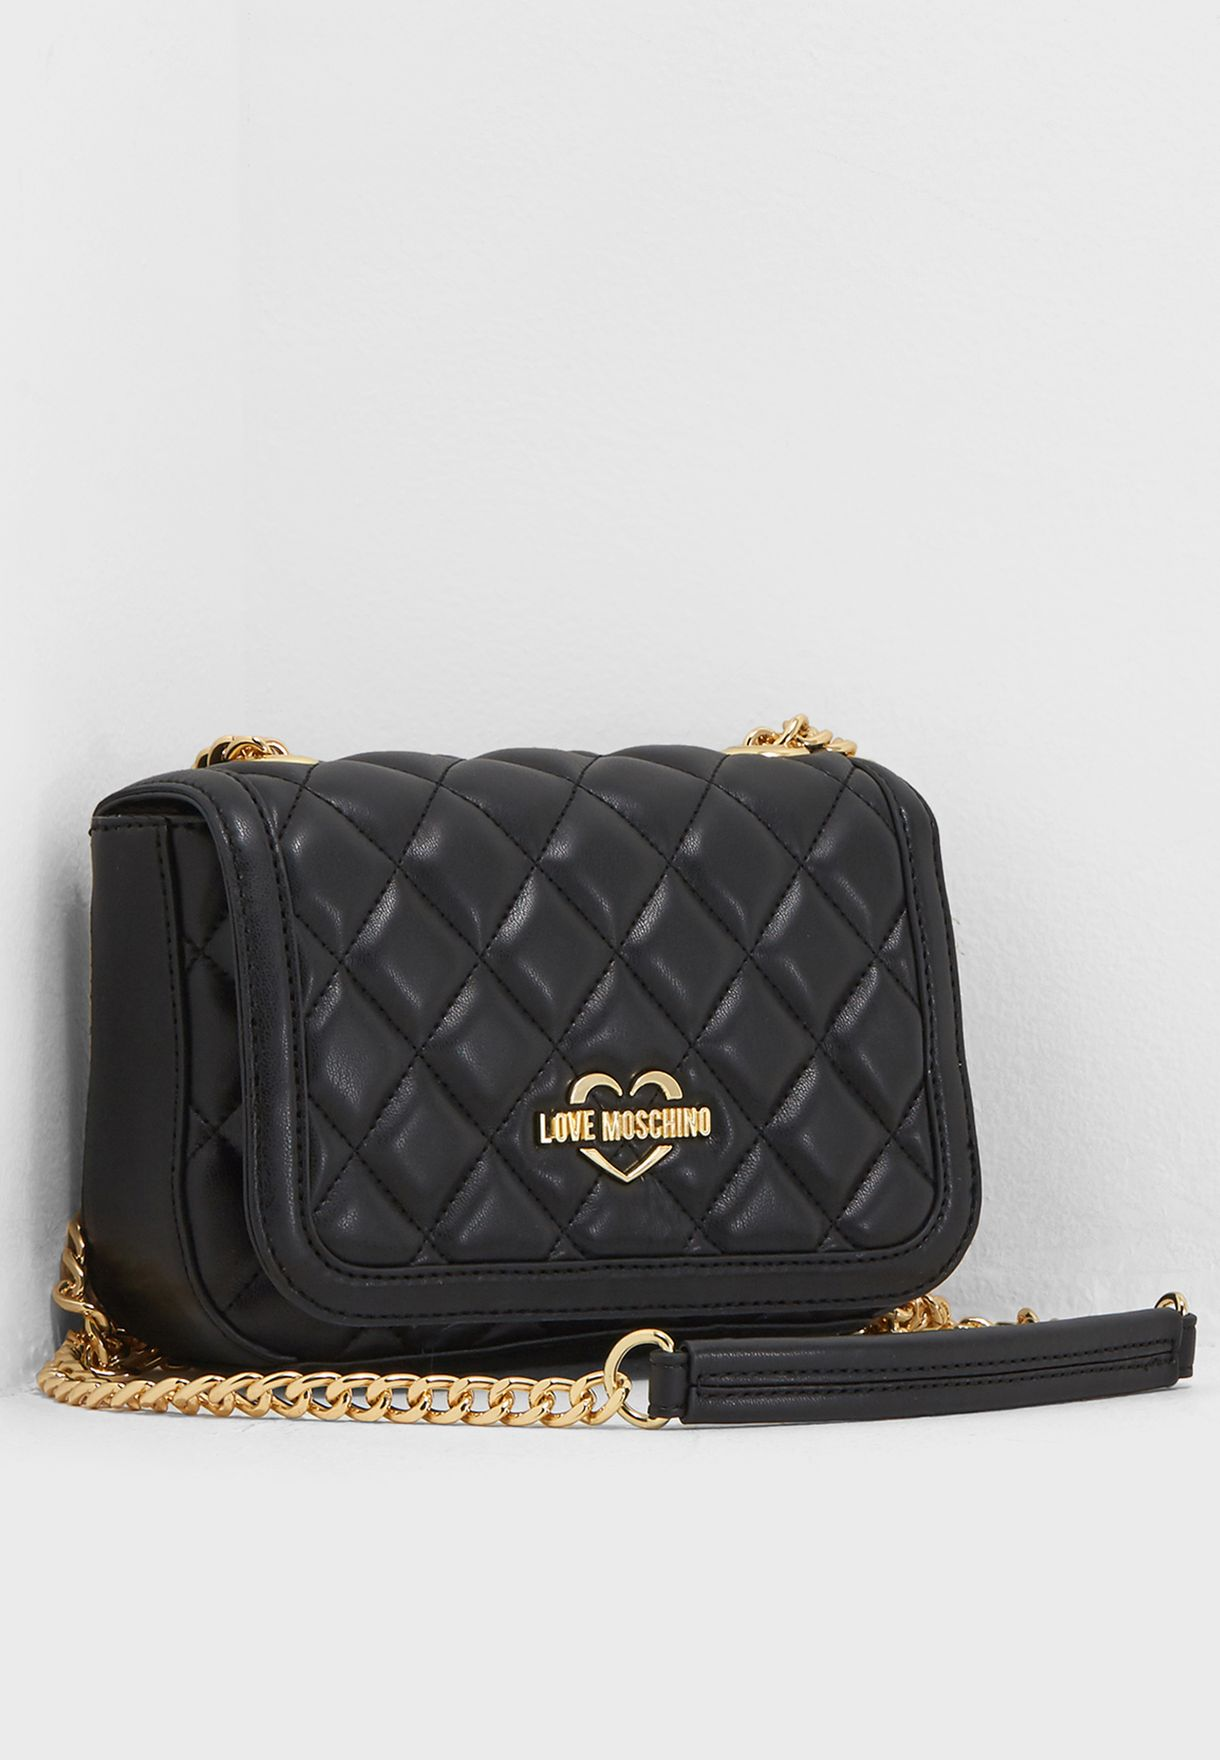 26bc793886 Shop Love Moschino black Superquilted Crossbody JC4207PP05KA000B for ...